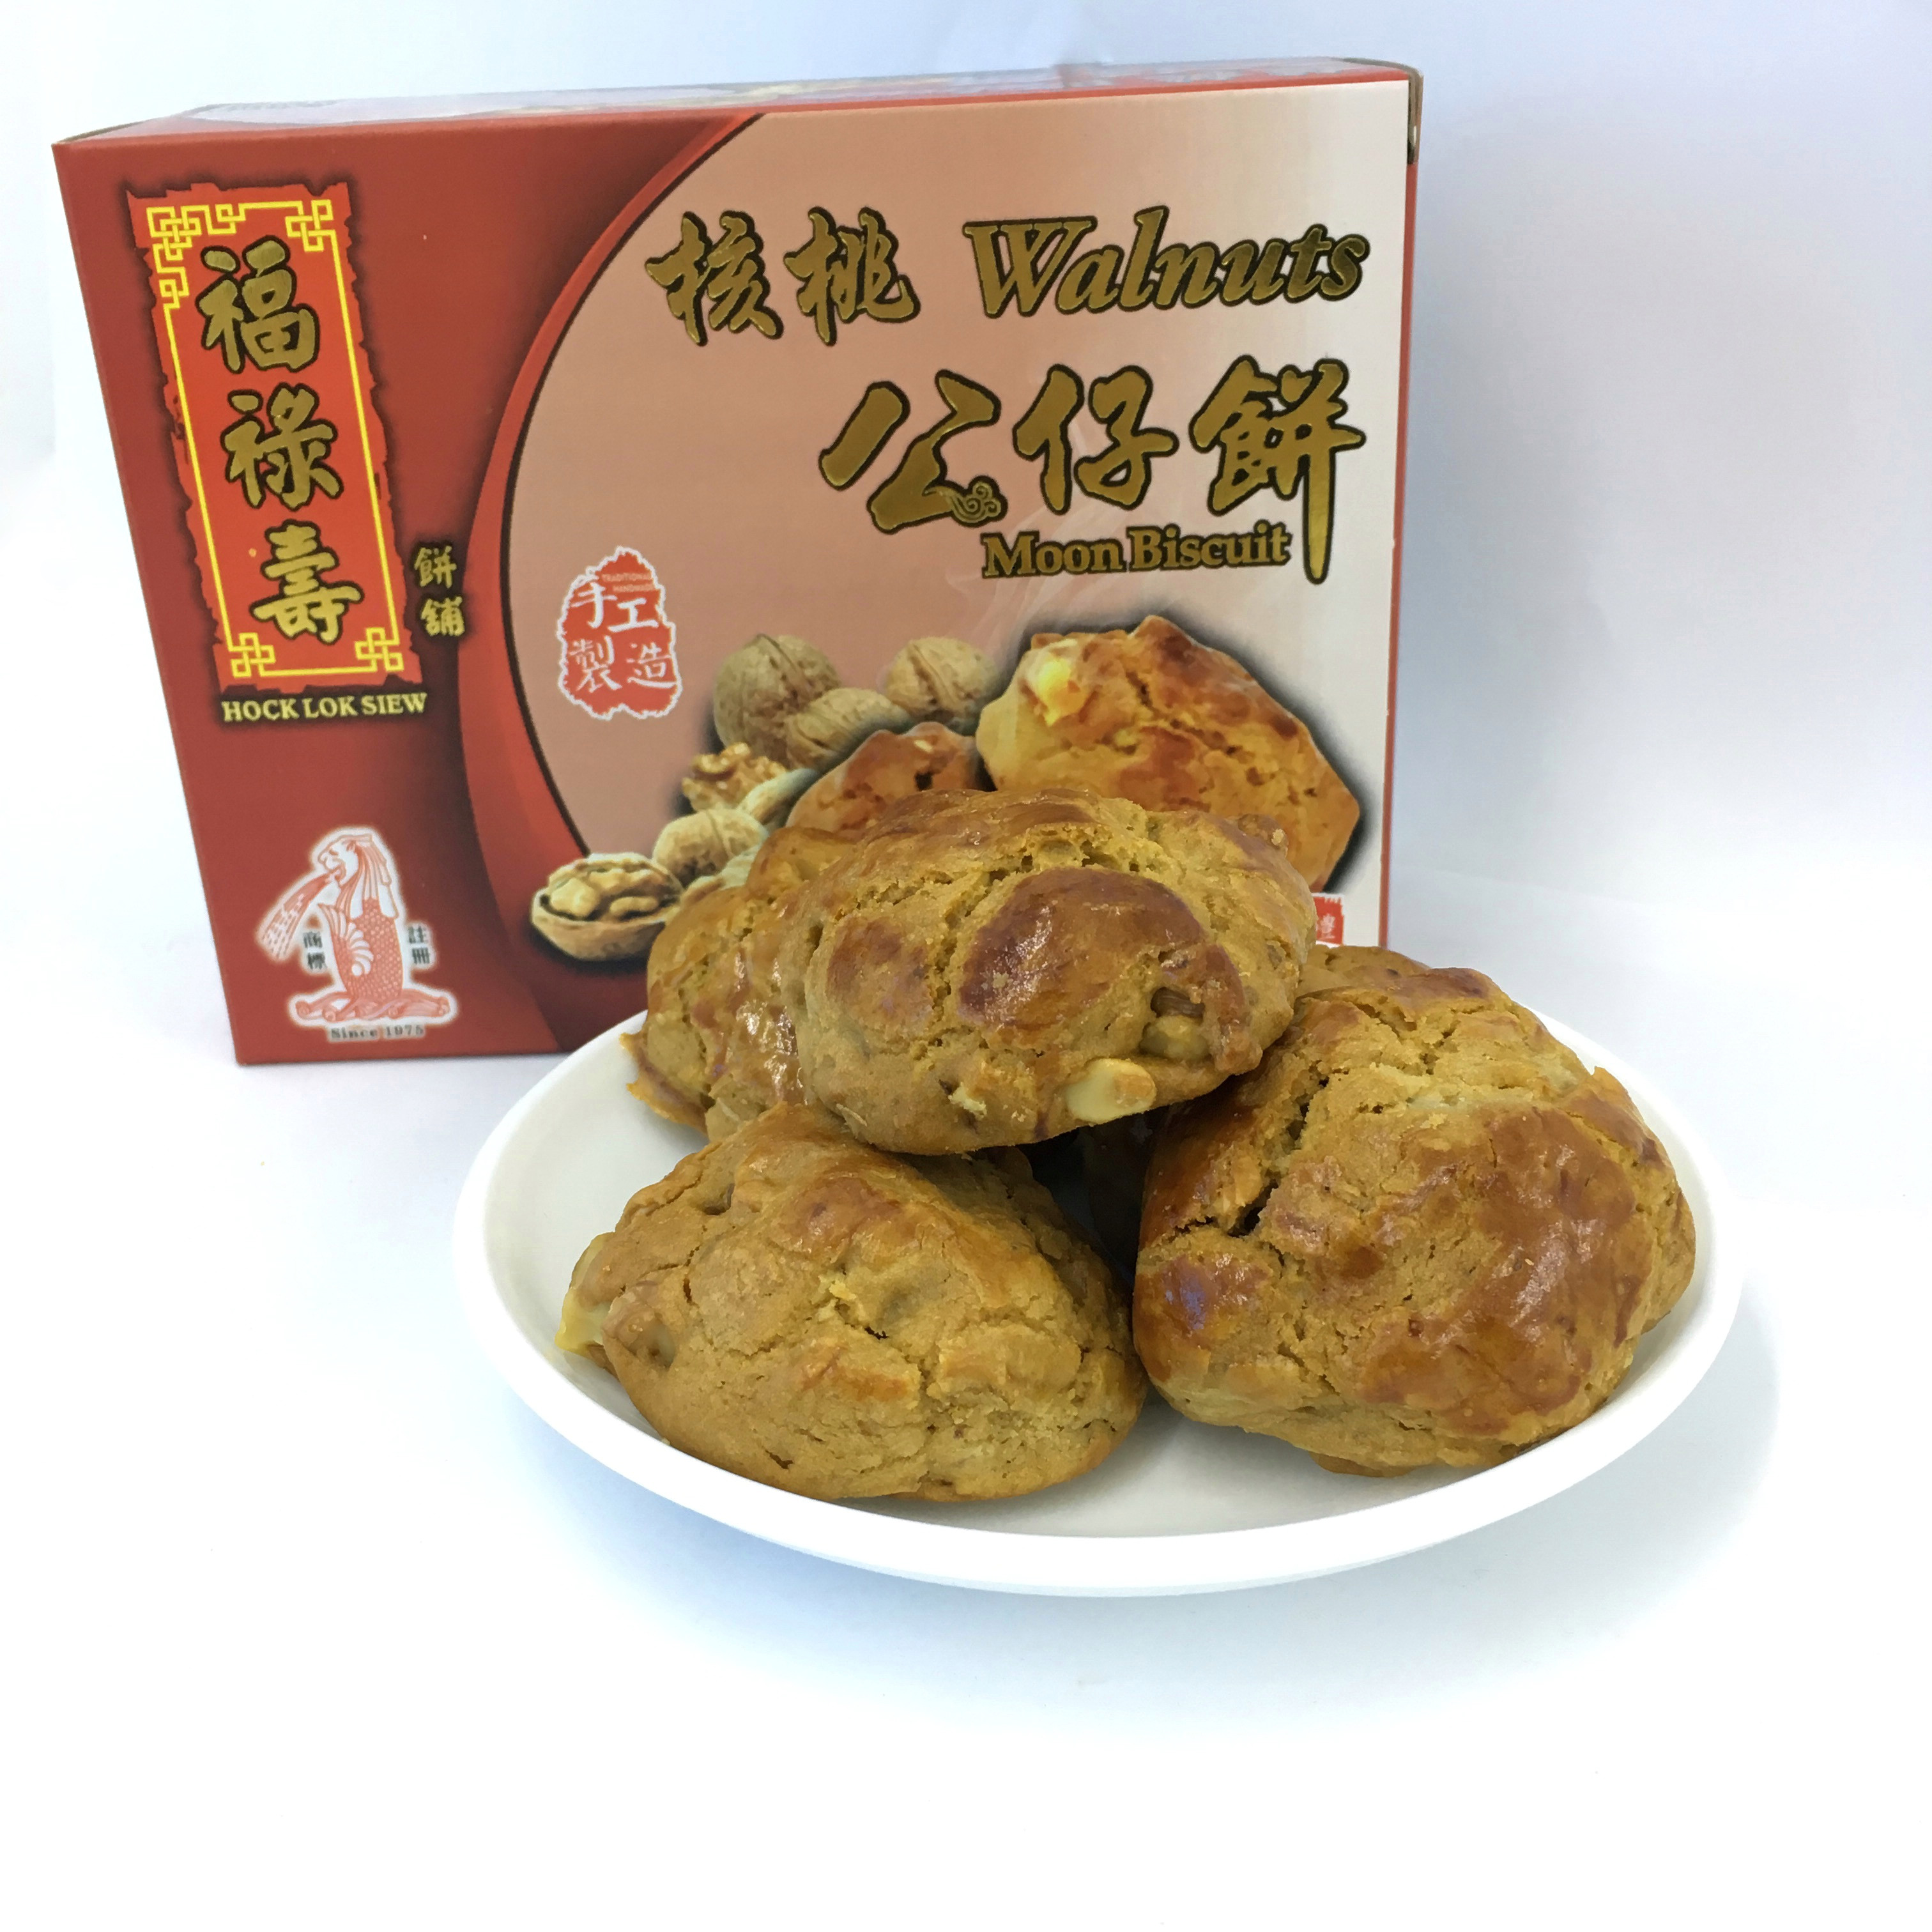 image of Walnuts Moon Biscuit 核桃公仔饼